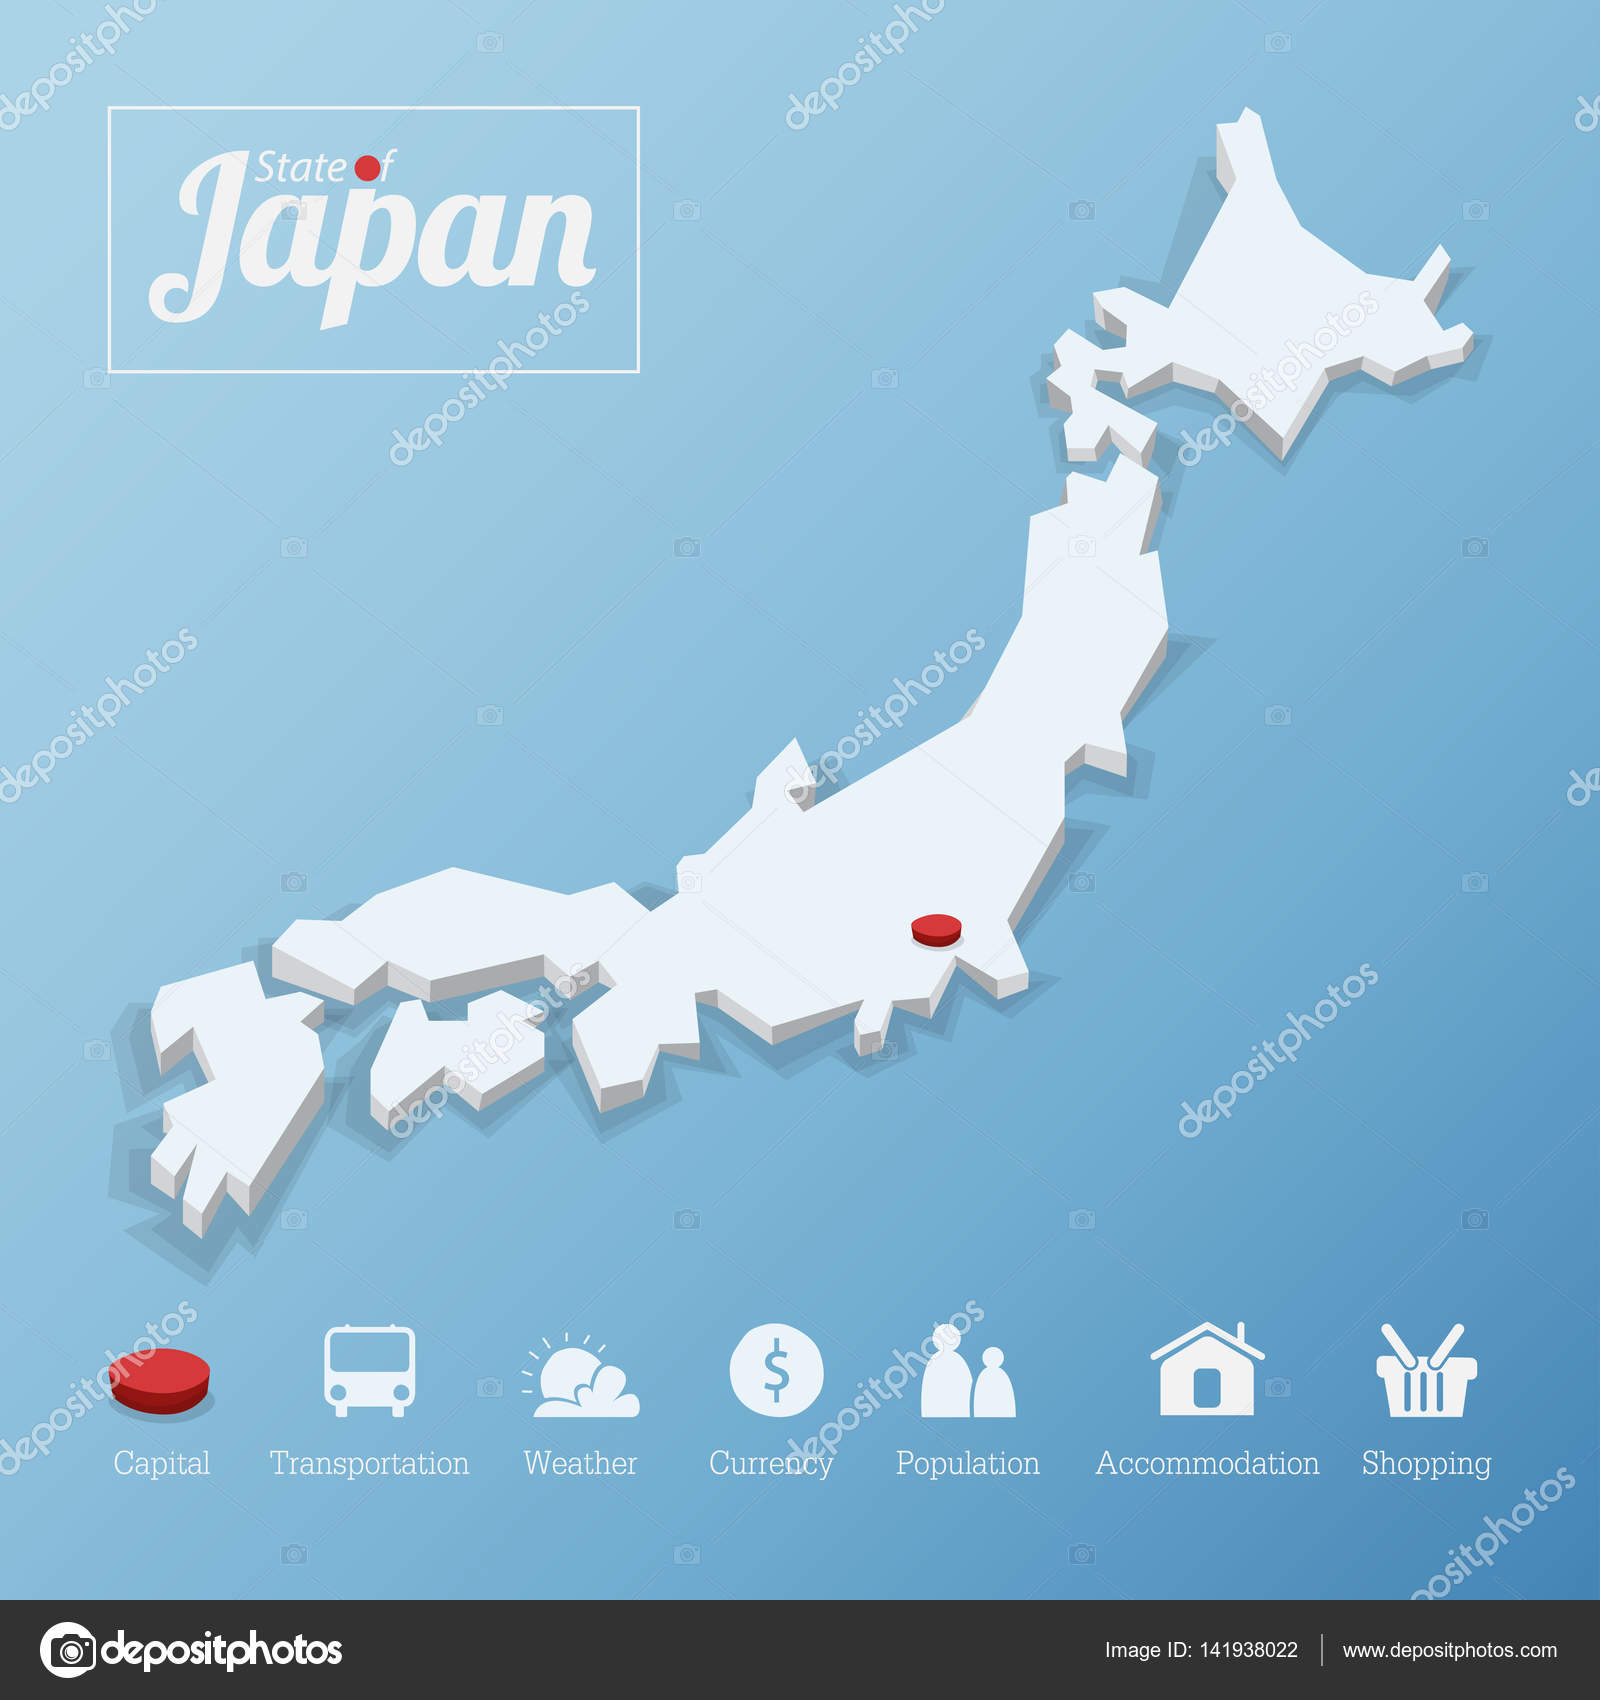 States Of Japan Map Including Tourism Icon In Flat Design For